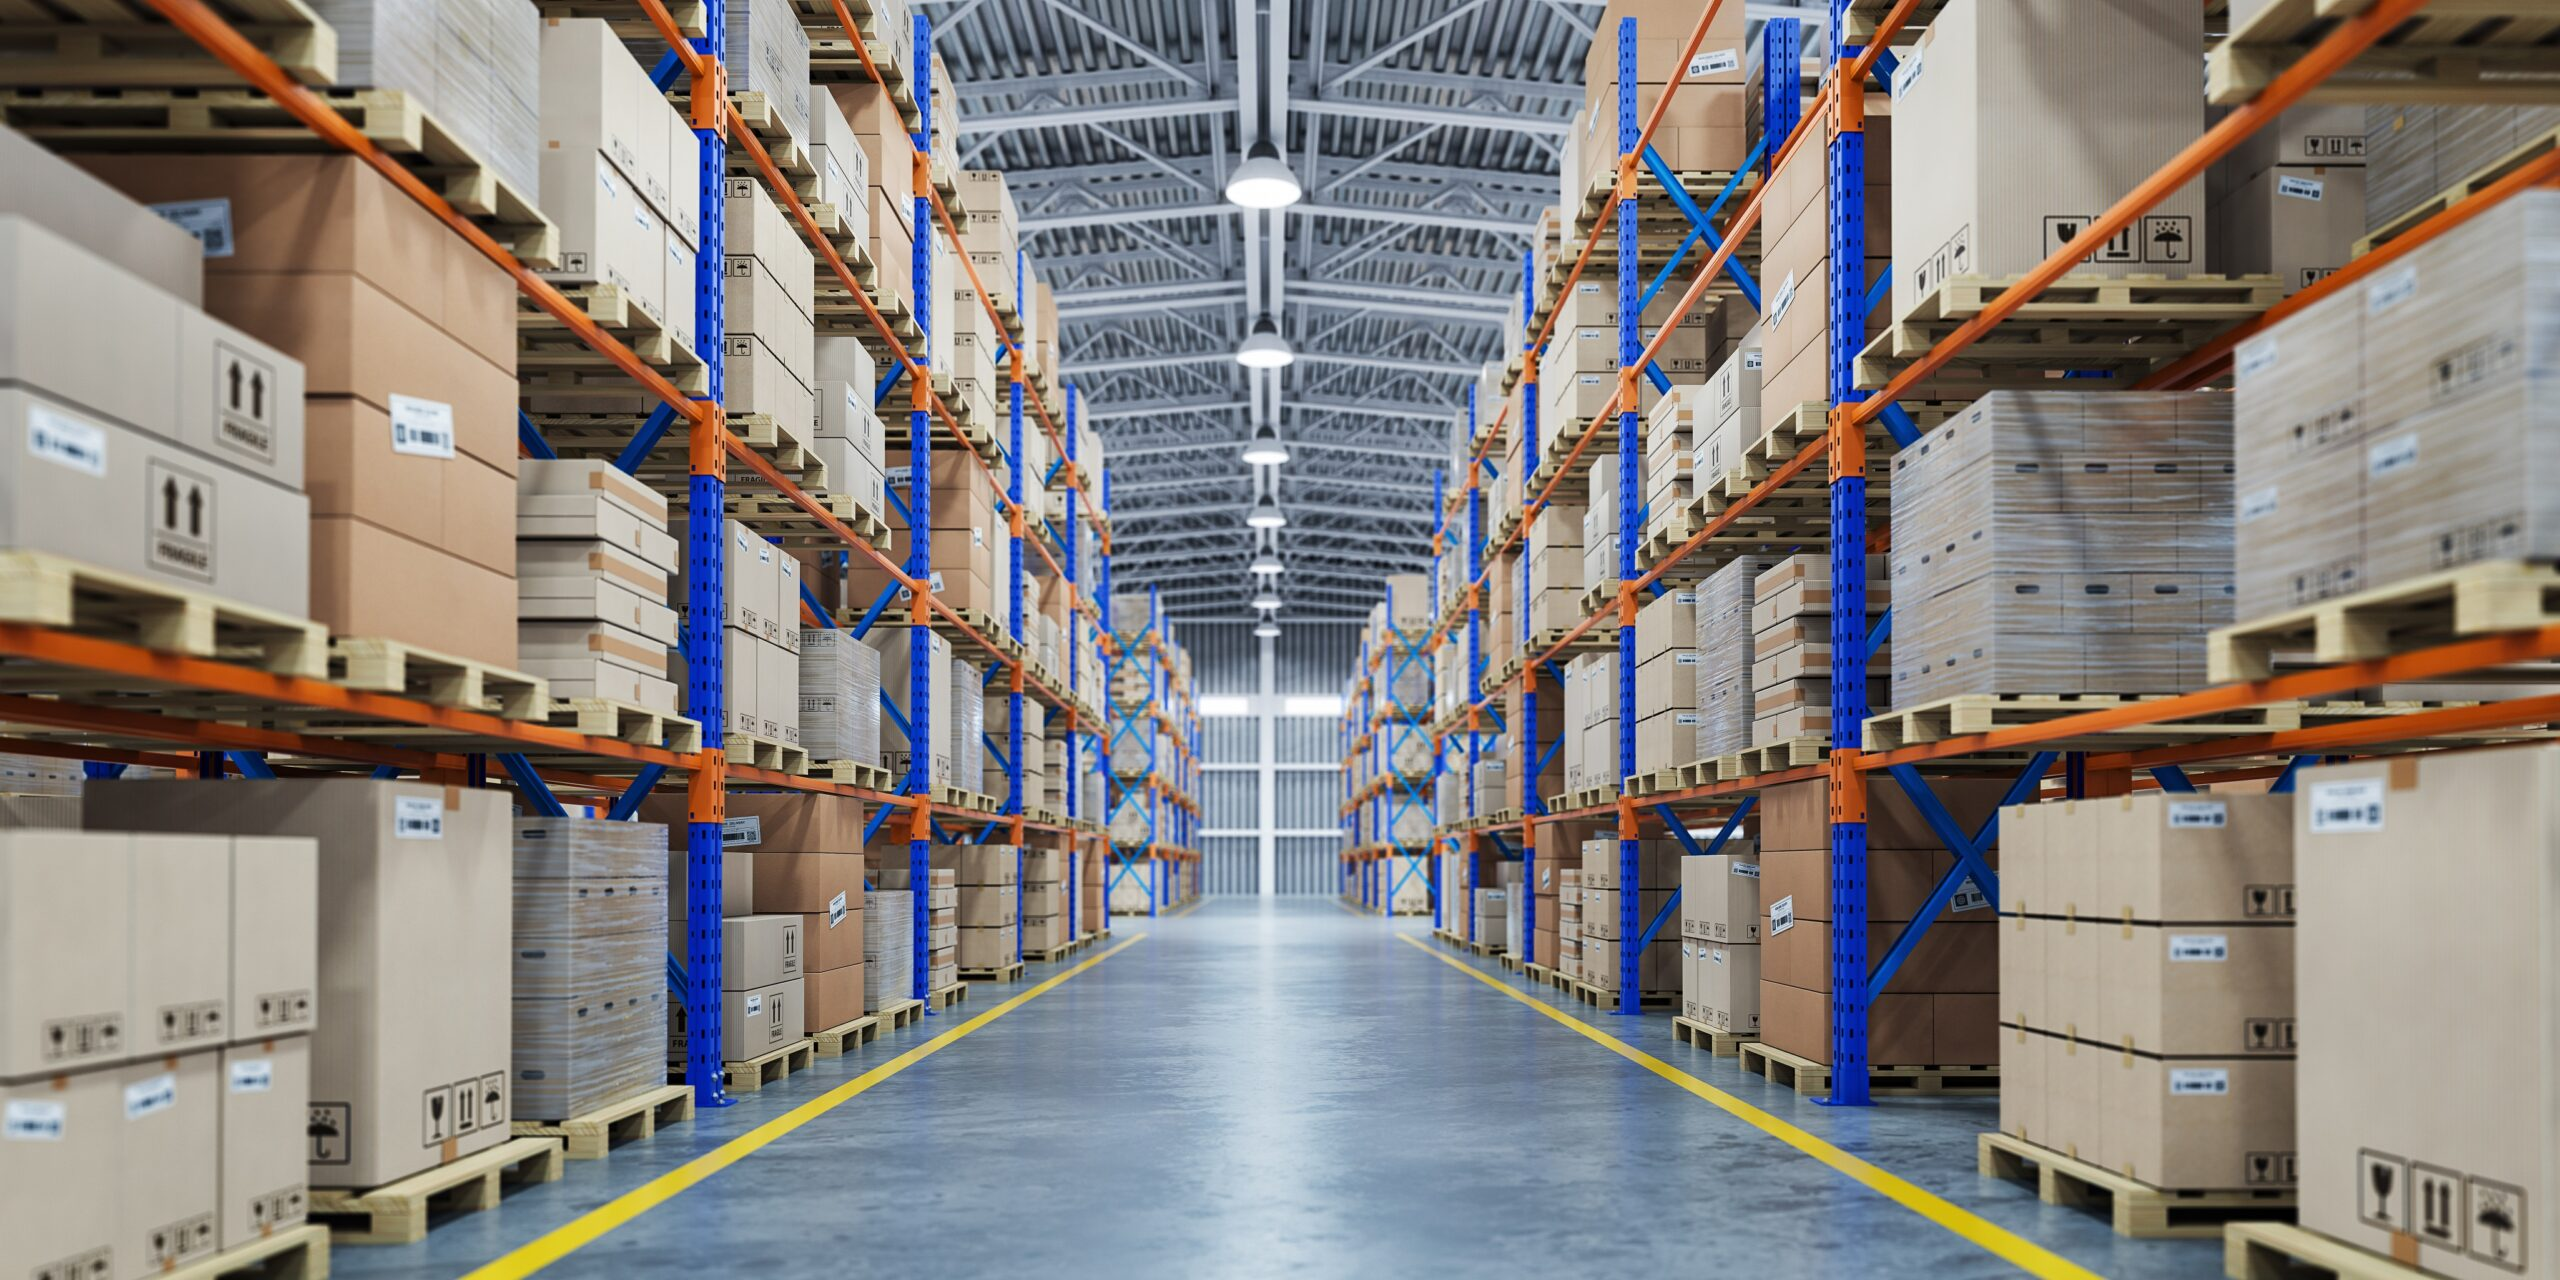 WoodenStreet to spend 5 Million USD for expanding its Warehouse Capacity by Fivefold